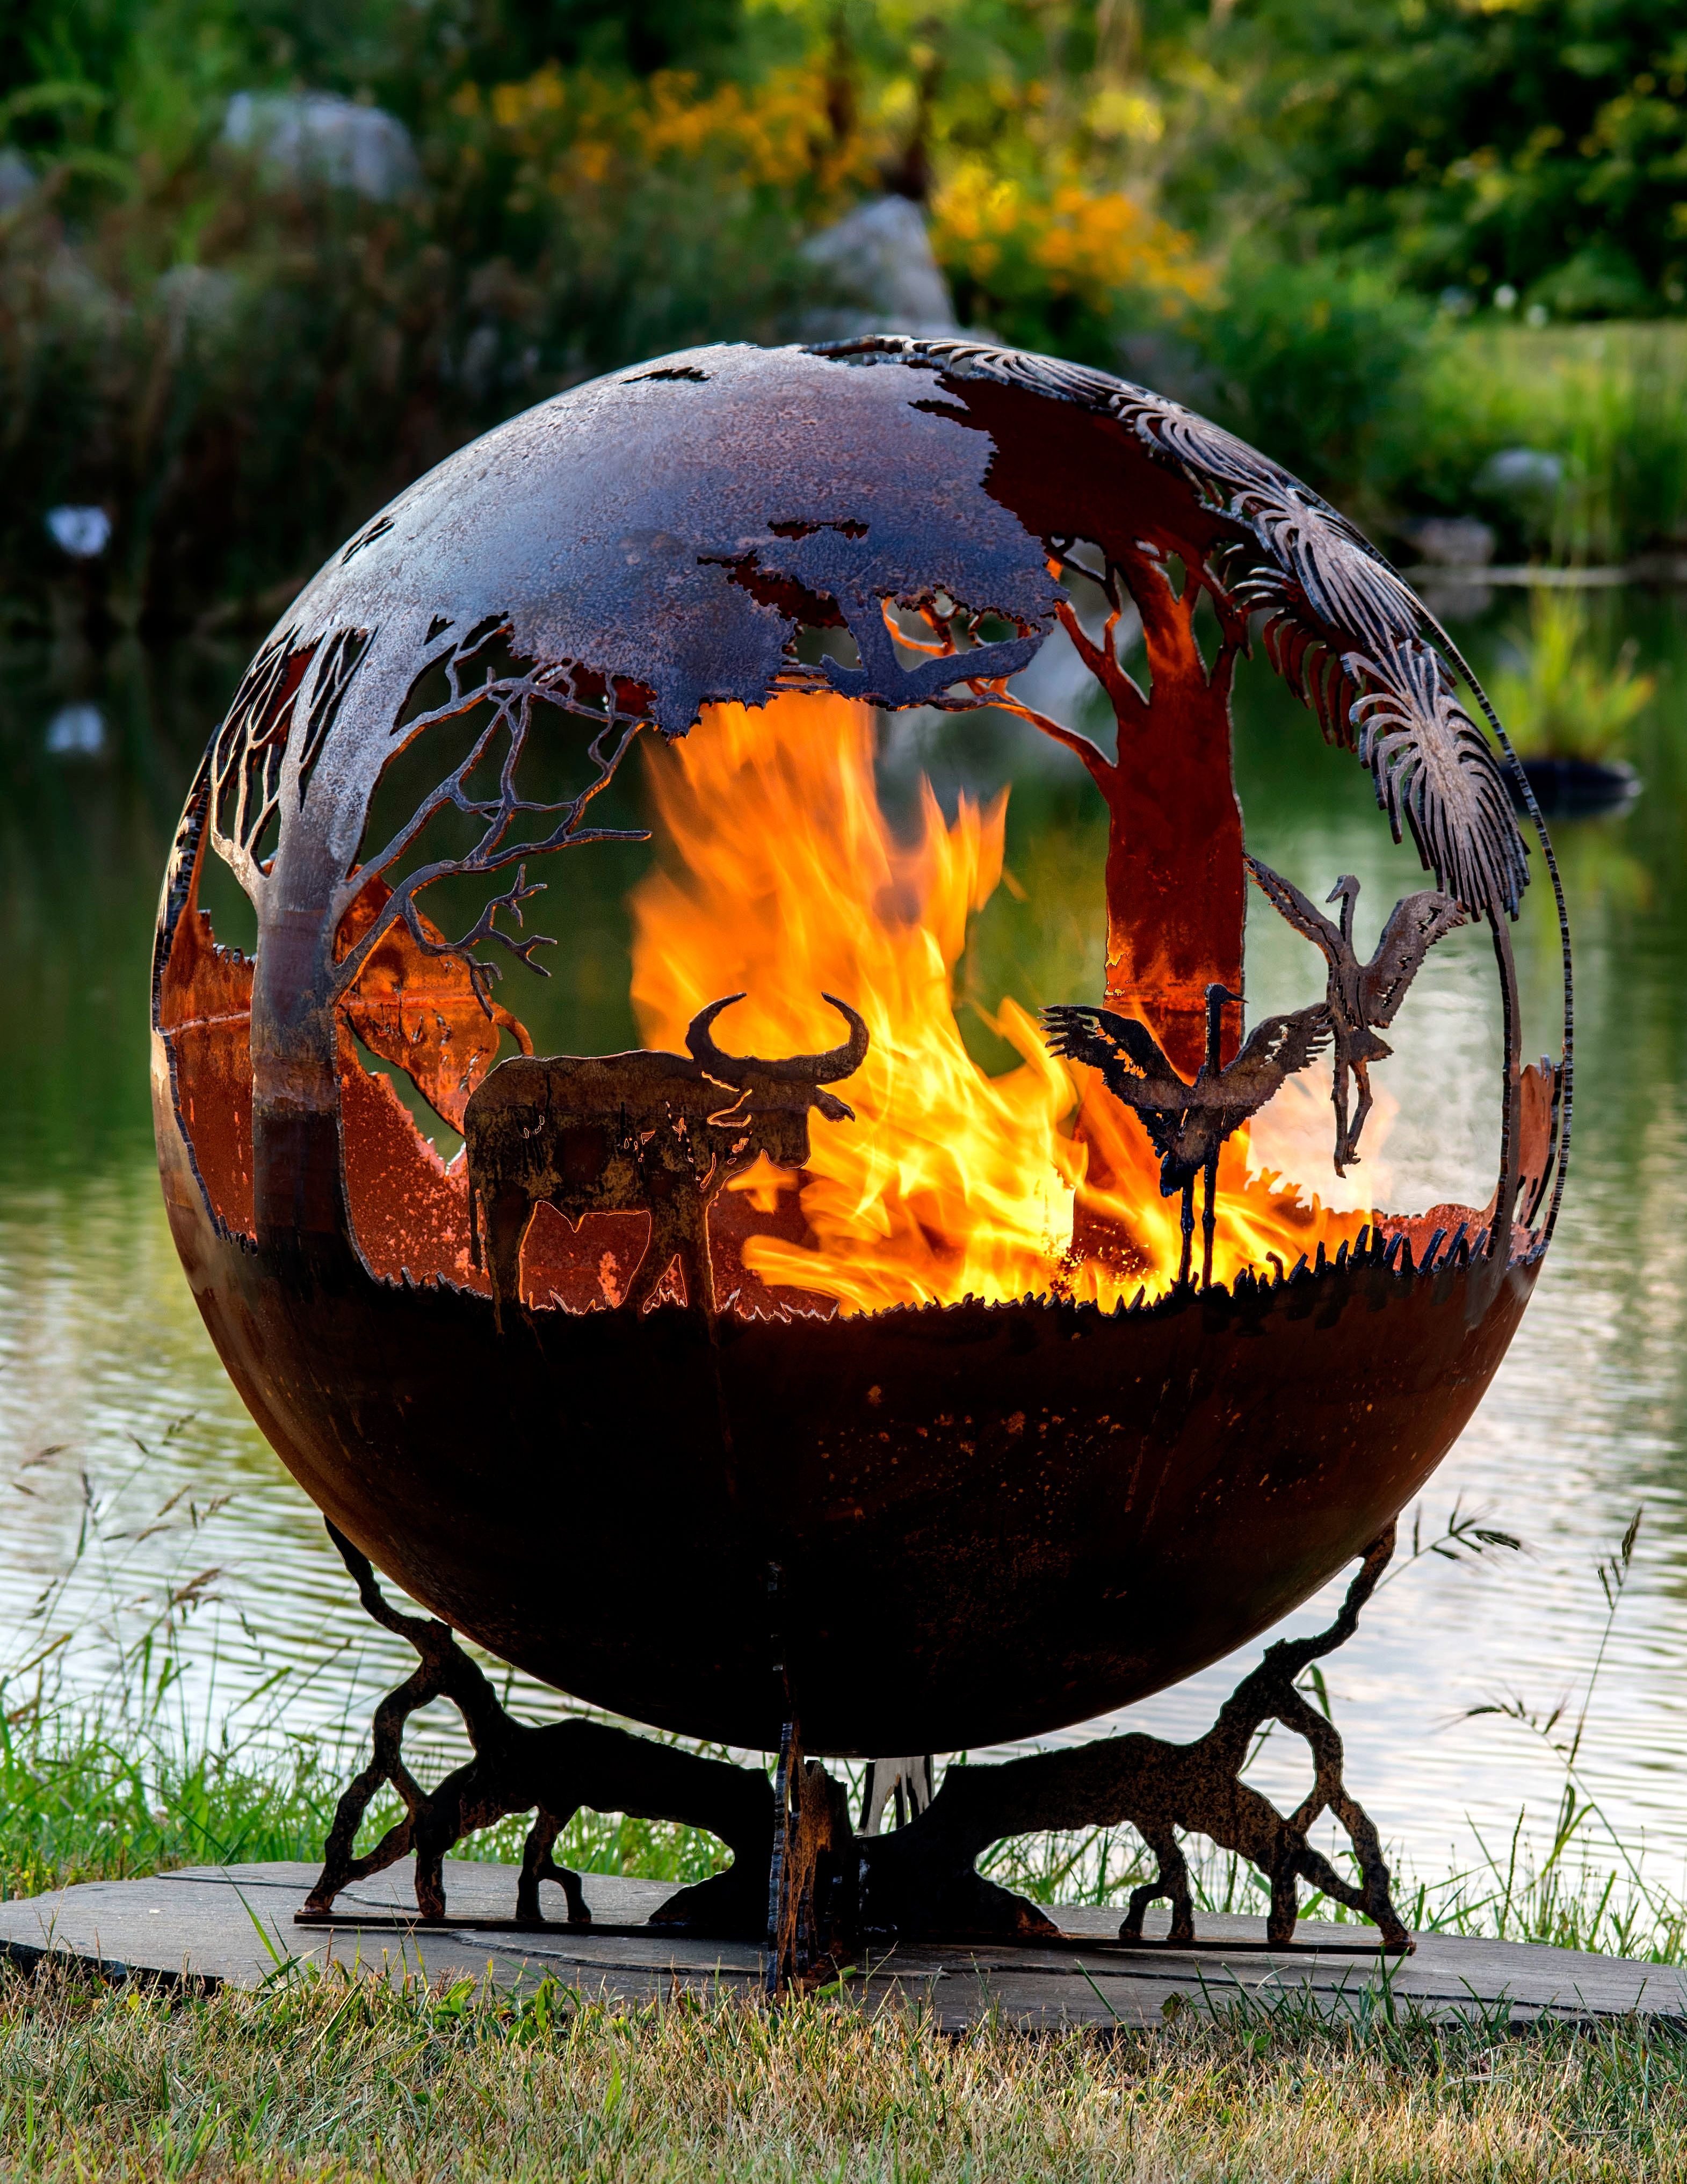 Outback Australia Fire Pit Sphere Fire pit sphere